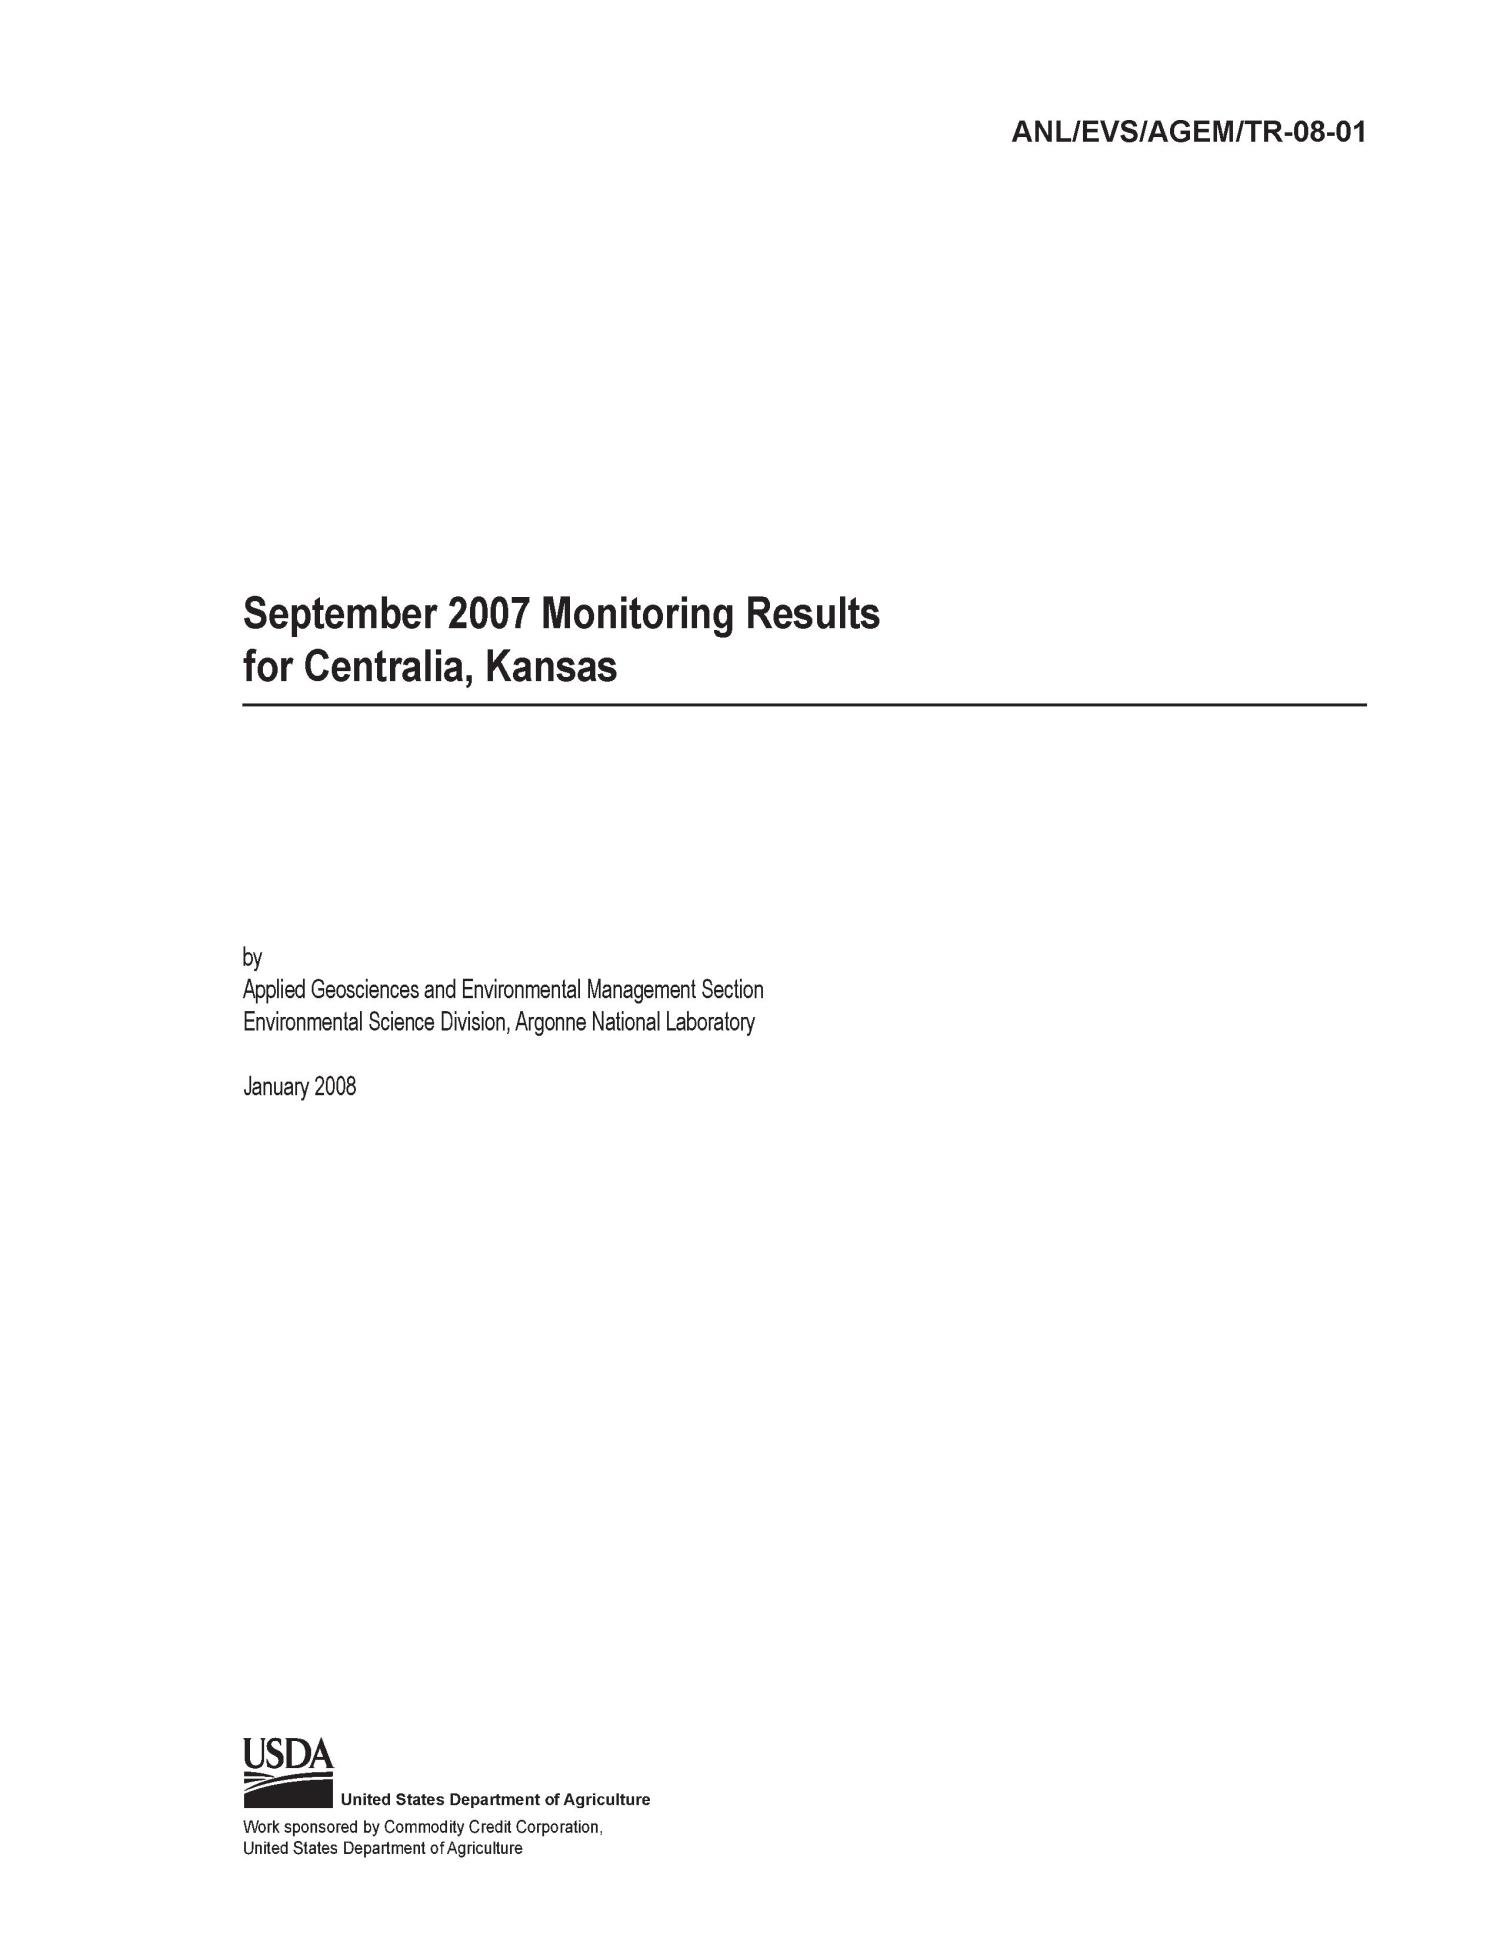 September 2007 monitoring results for Centralia, Kansas.                                                                                                      [Sequence #]: 3 of 50